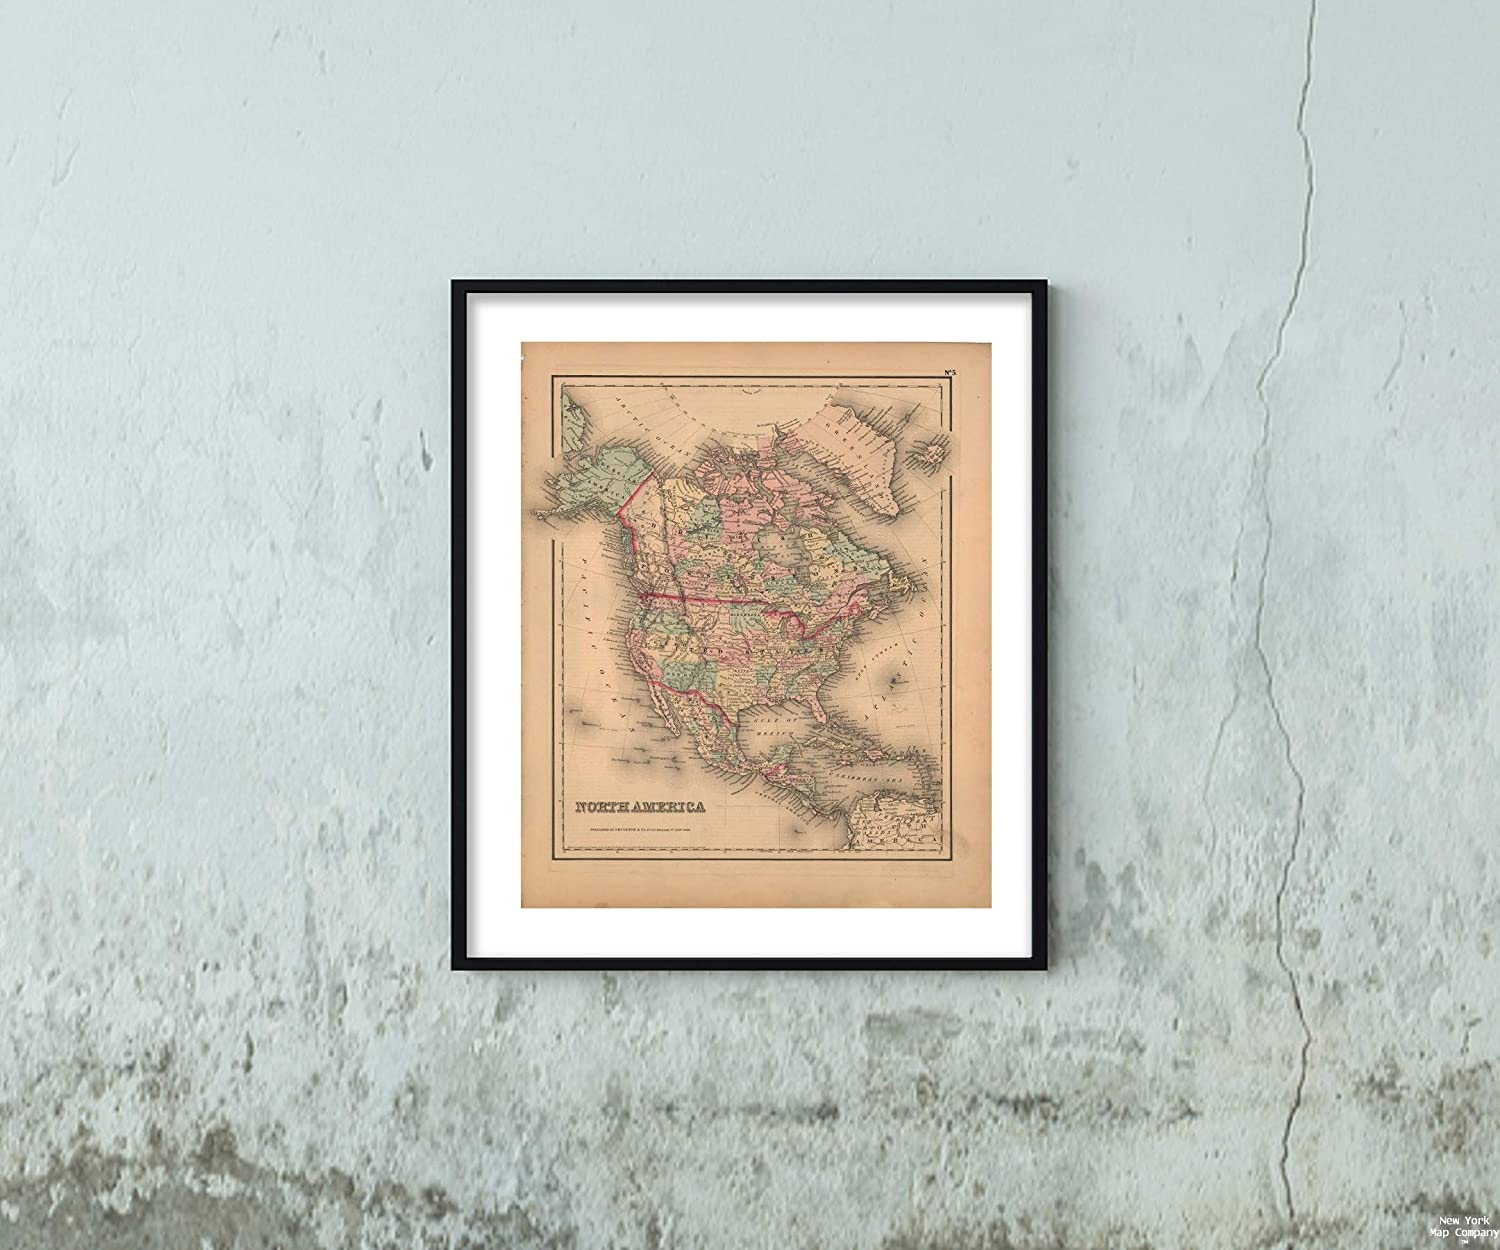 Map General Atlas (of The World), North America 1857 Continent Vintage Fine Art Reproduction Size: 20x24 Ready to Frame